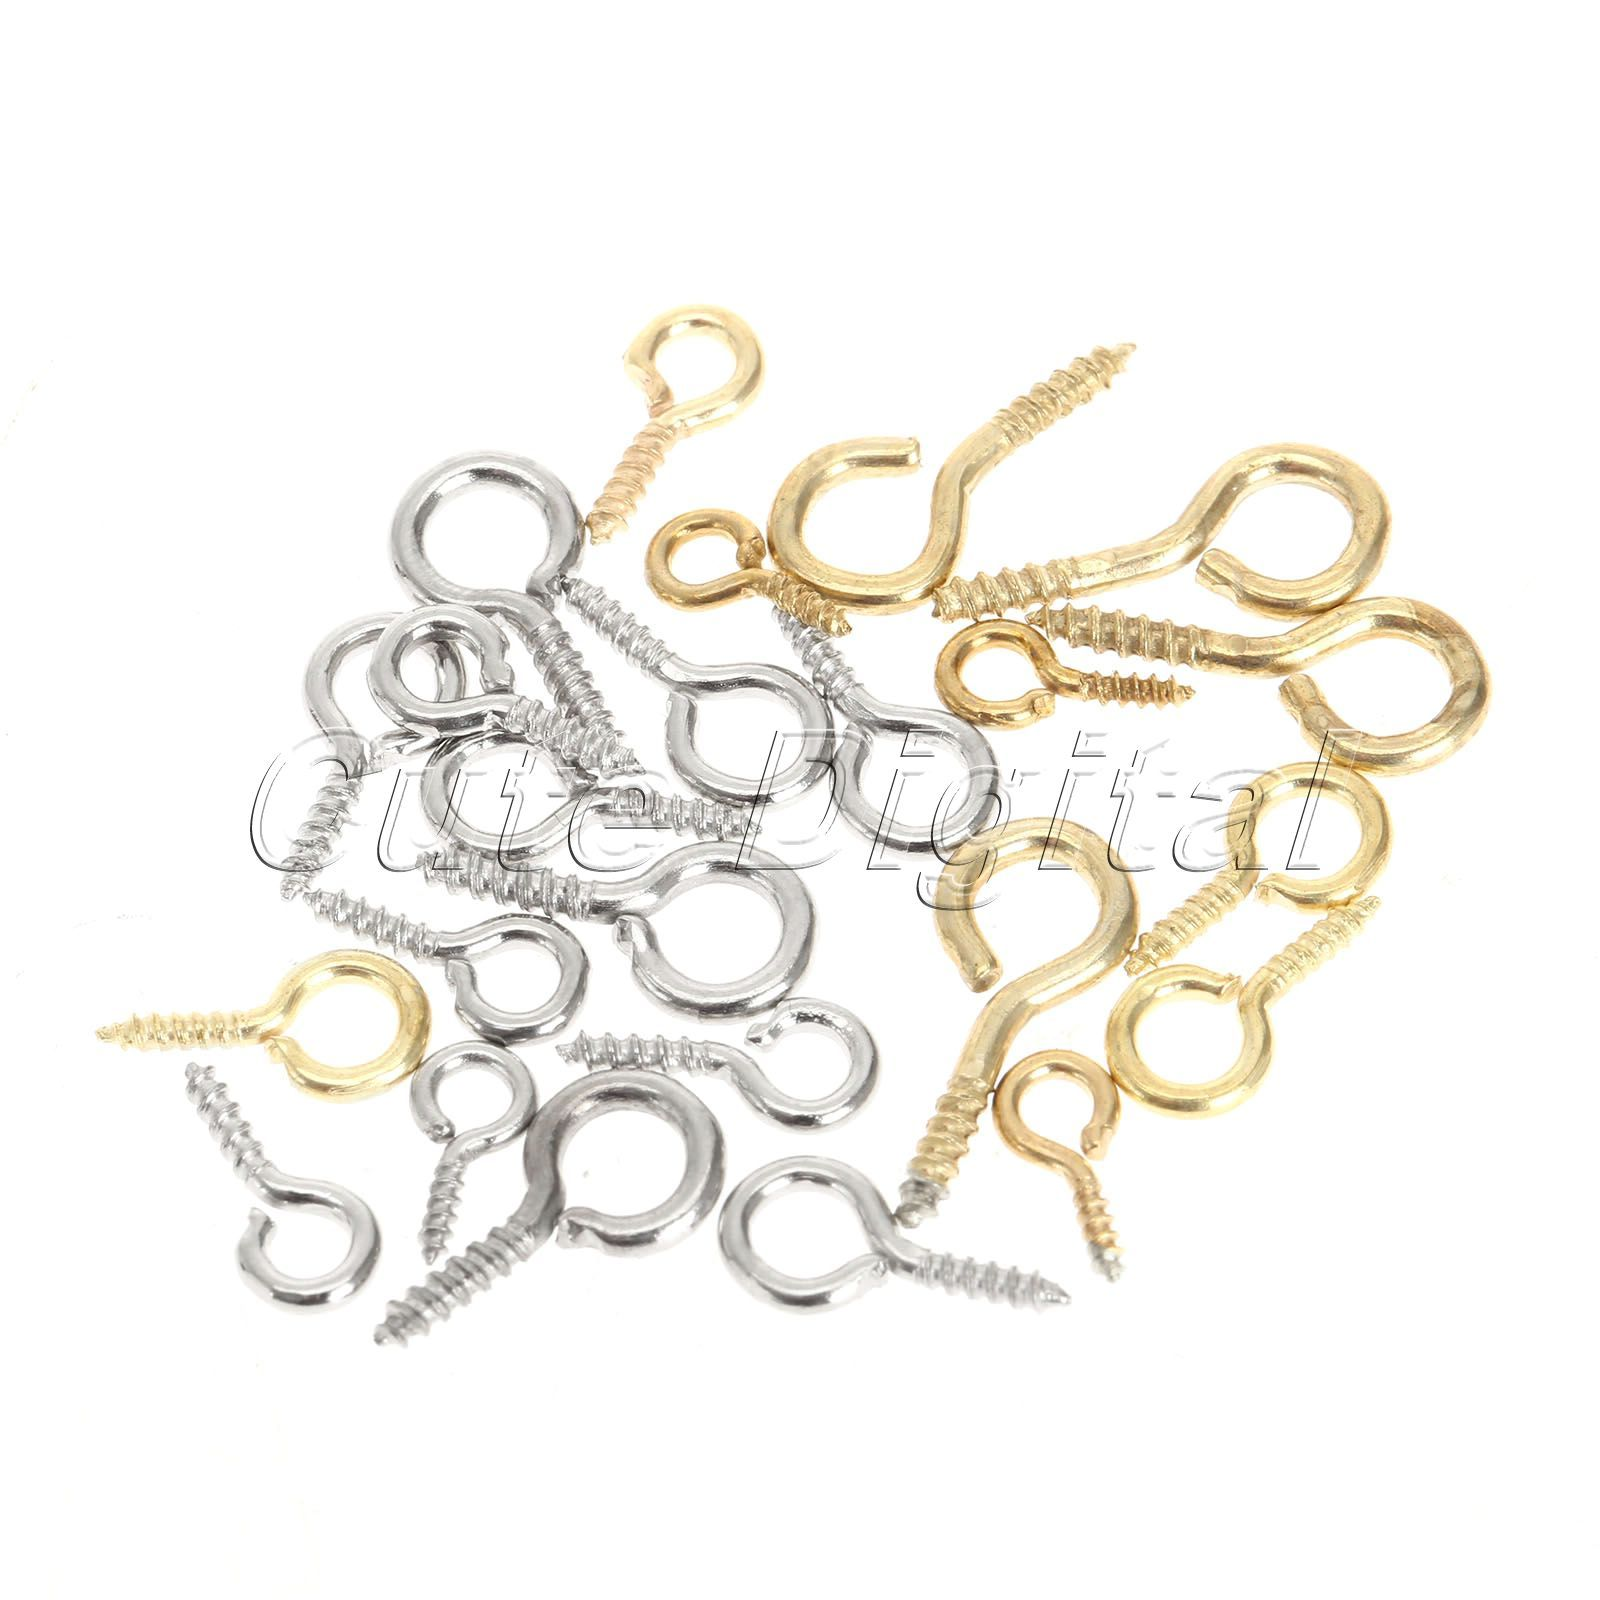 200pcs Gold/Silver Metal Small Mini Eye Pins Eyepins Hooks Eyelets Screw Clasps Jewelry Findings Threaded Hardware 0# 14.5x6mm  EUR 3.66  Meer informatie  http://bit.ly/29J7tBI #aliexpress